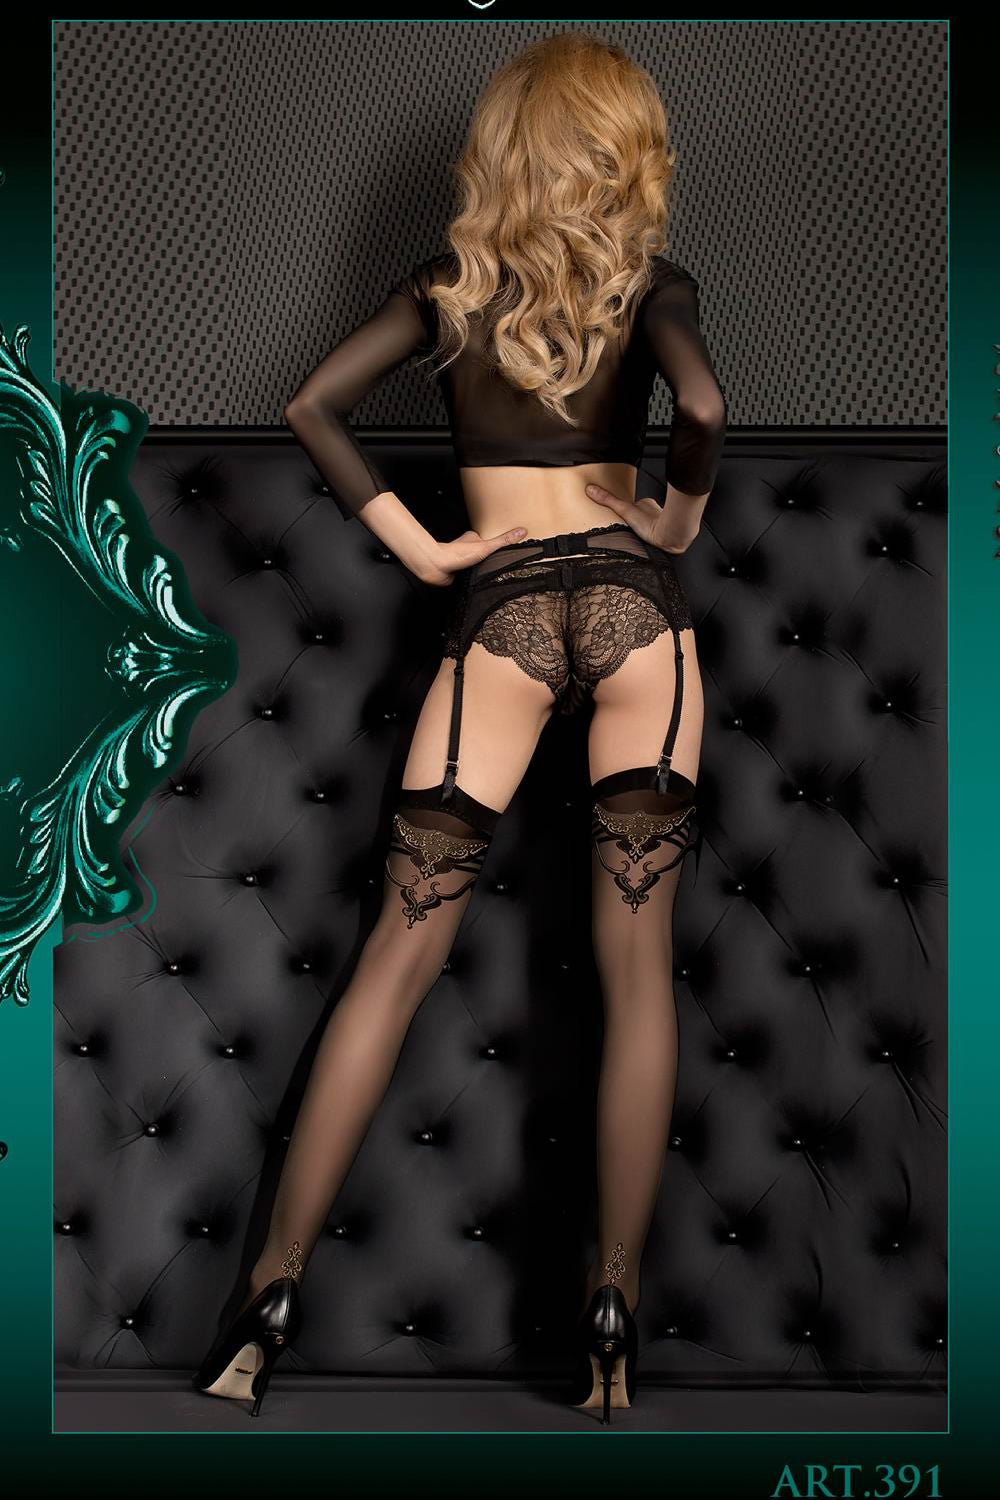 Ornate Sheer Stockings - She Said Boutique